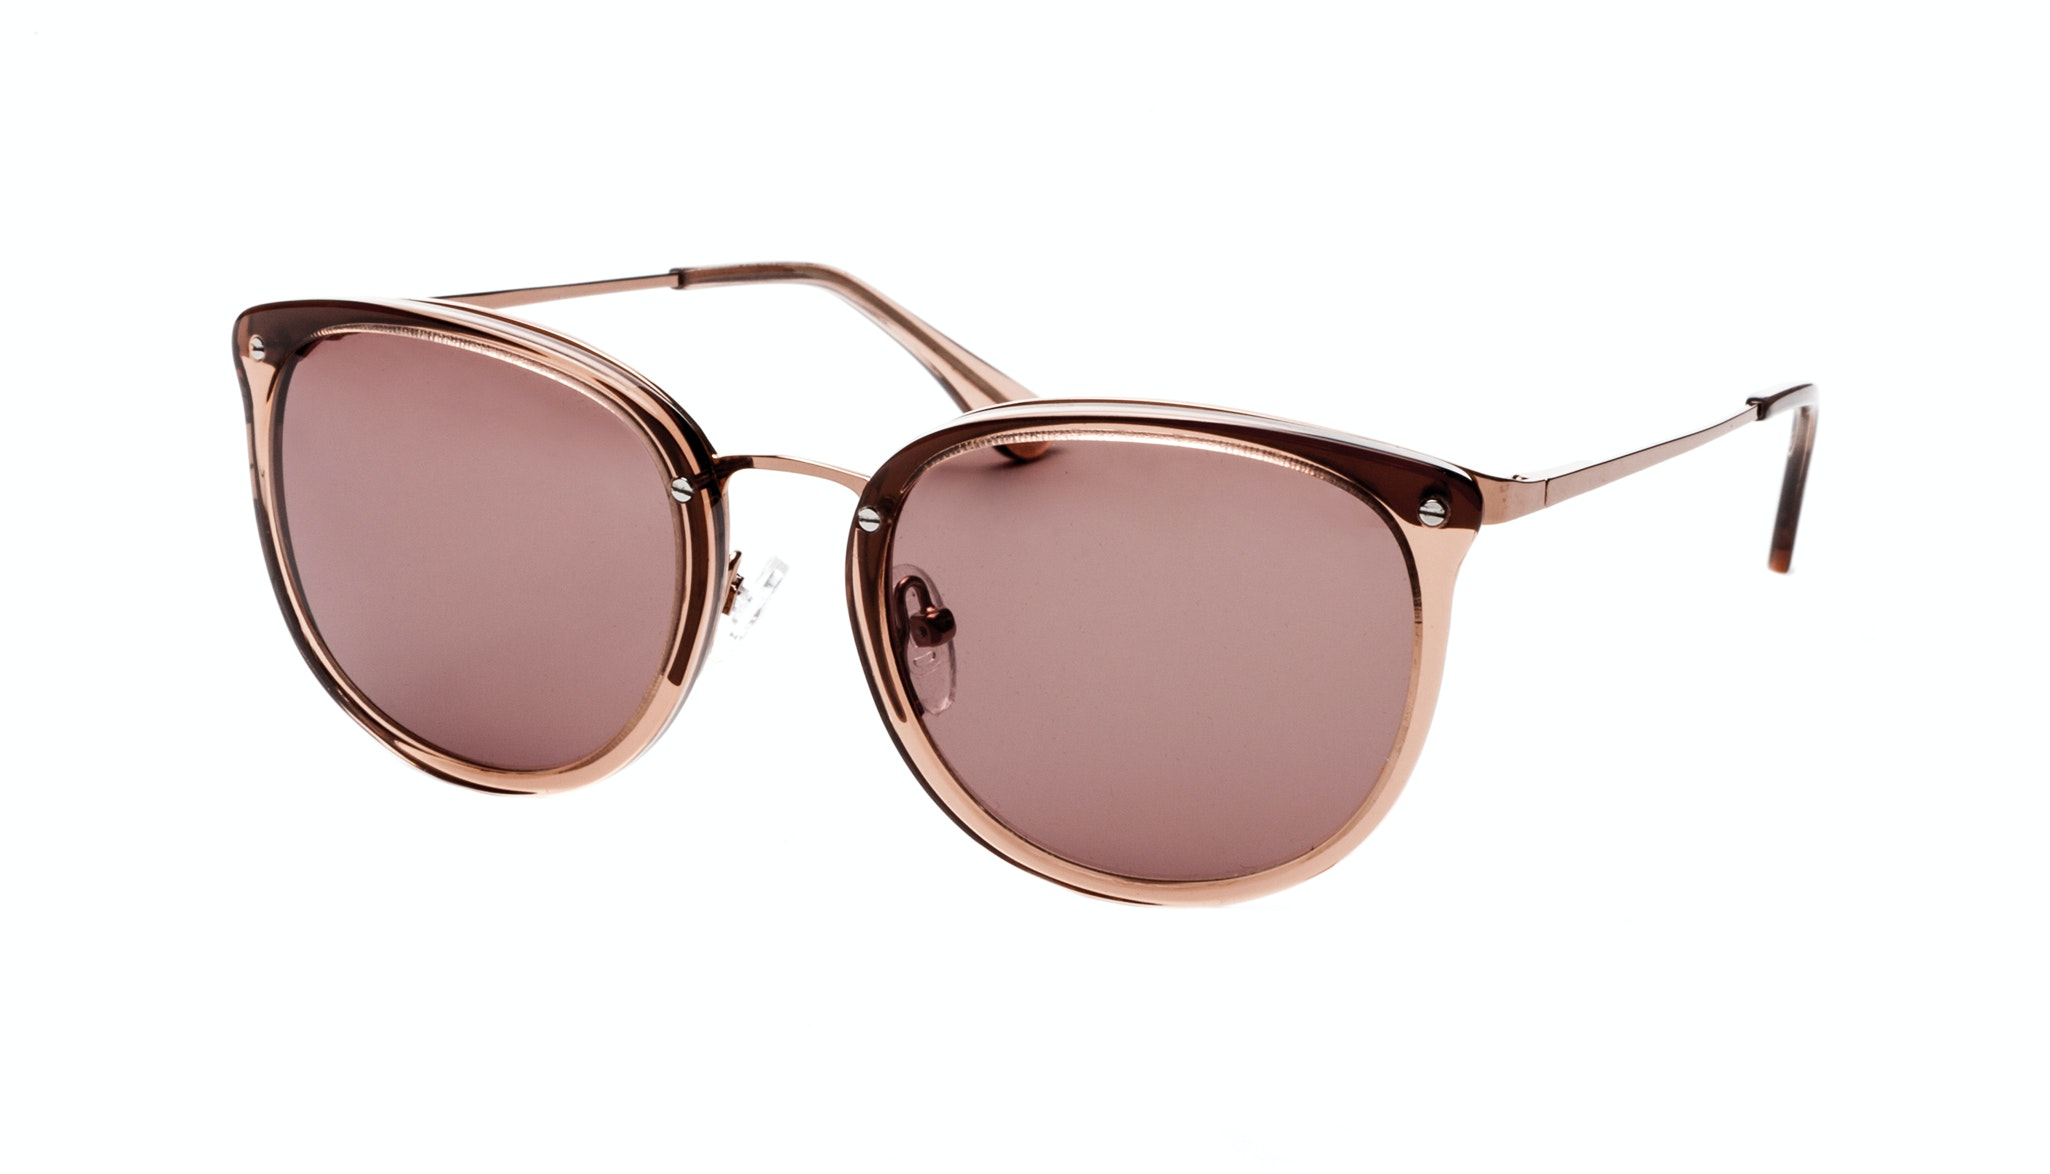 Affordable Fashion Glasses Round Sunglasses Women Amaze Rose Tilt